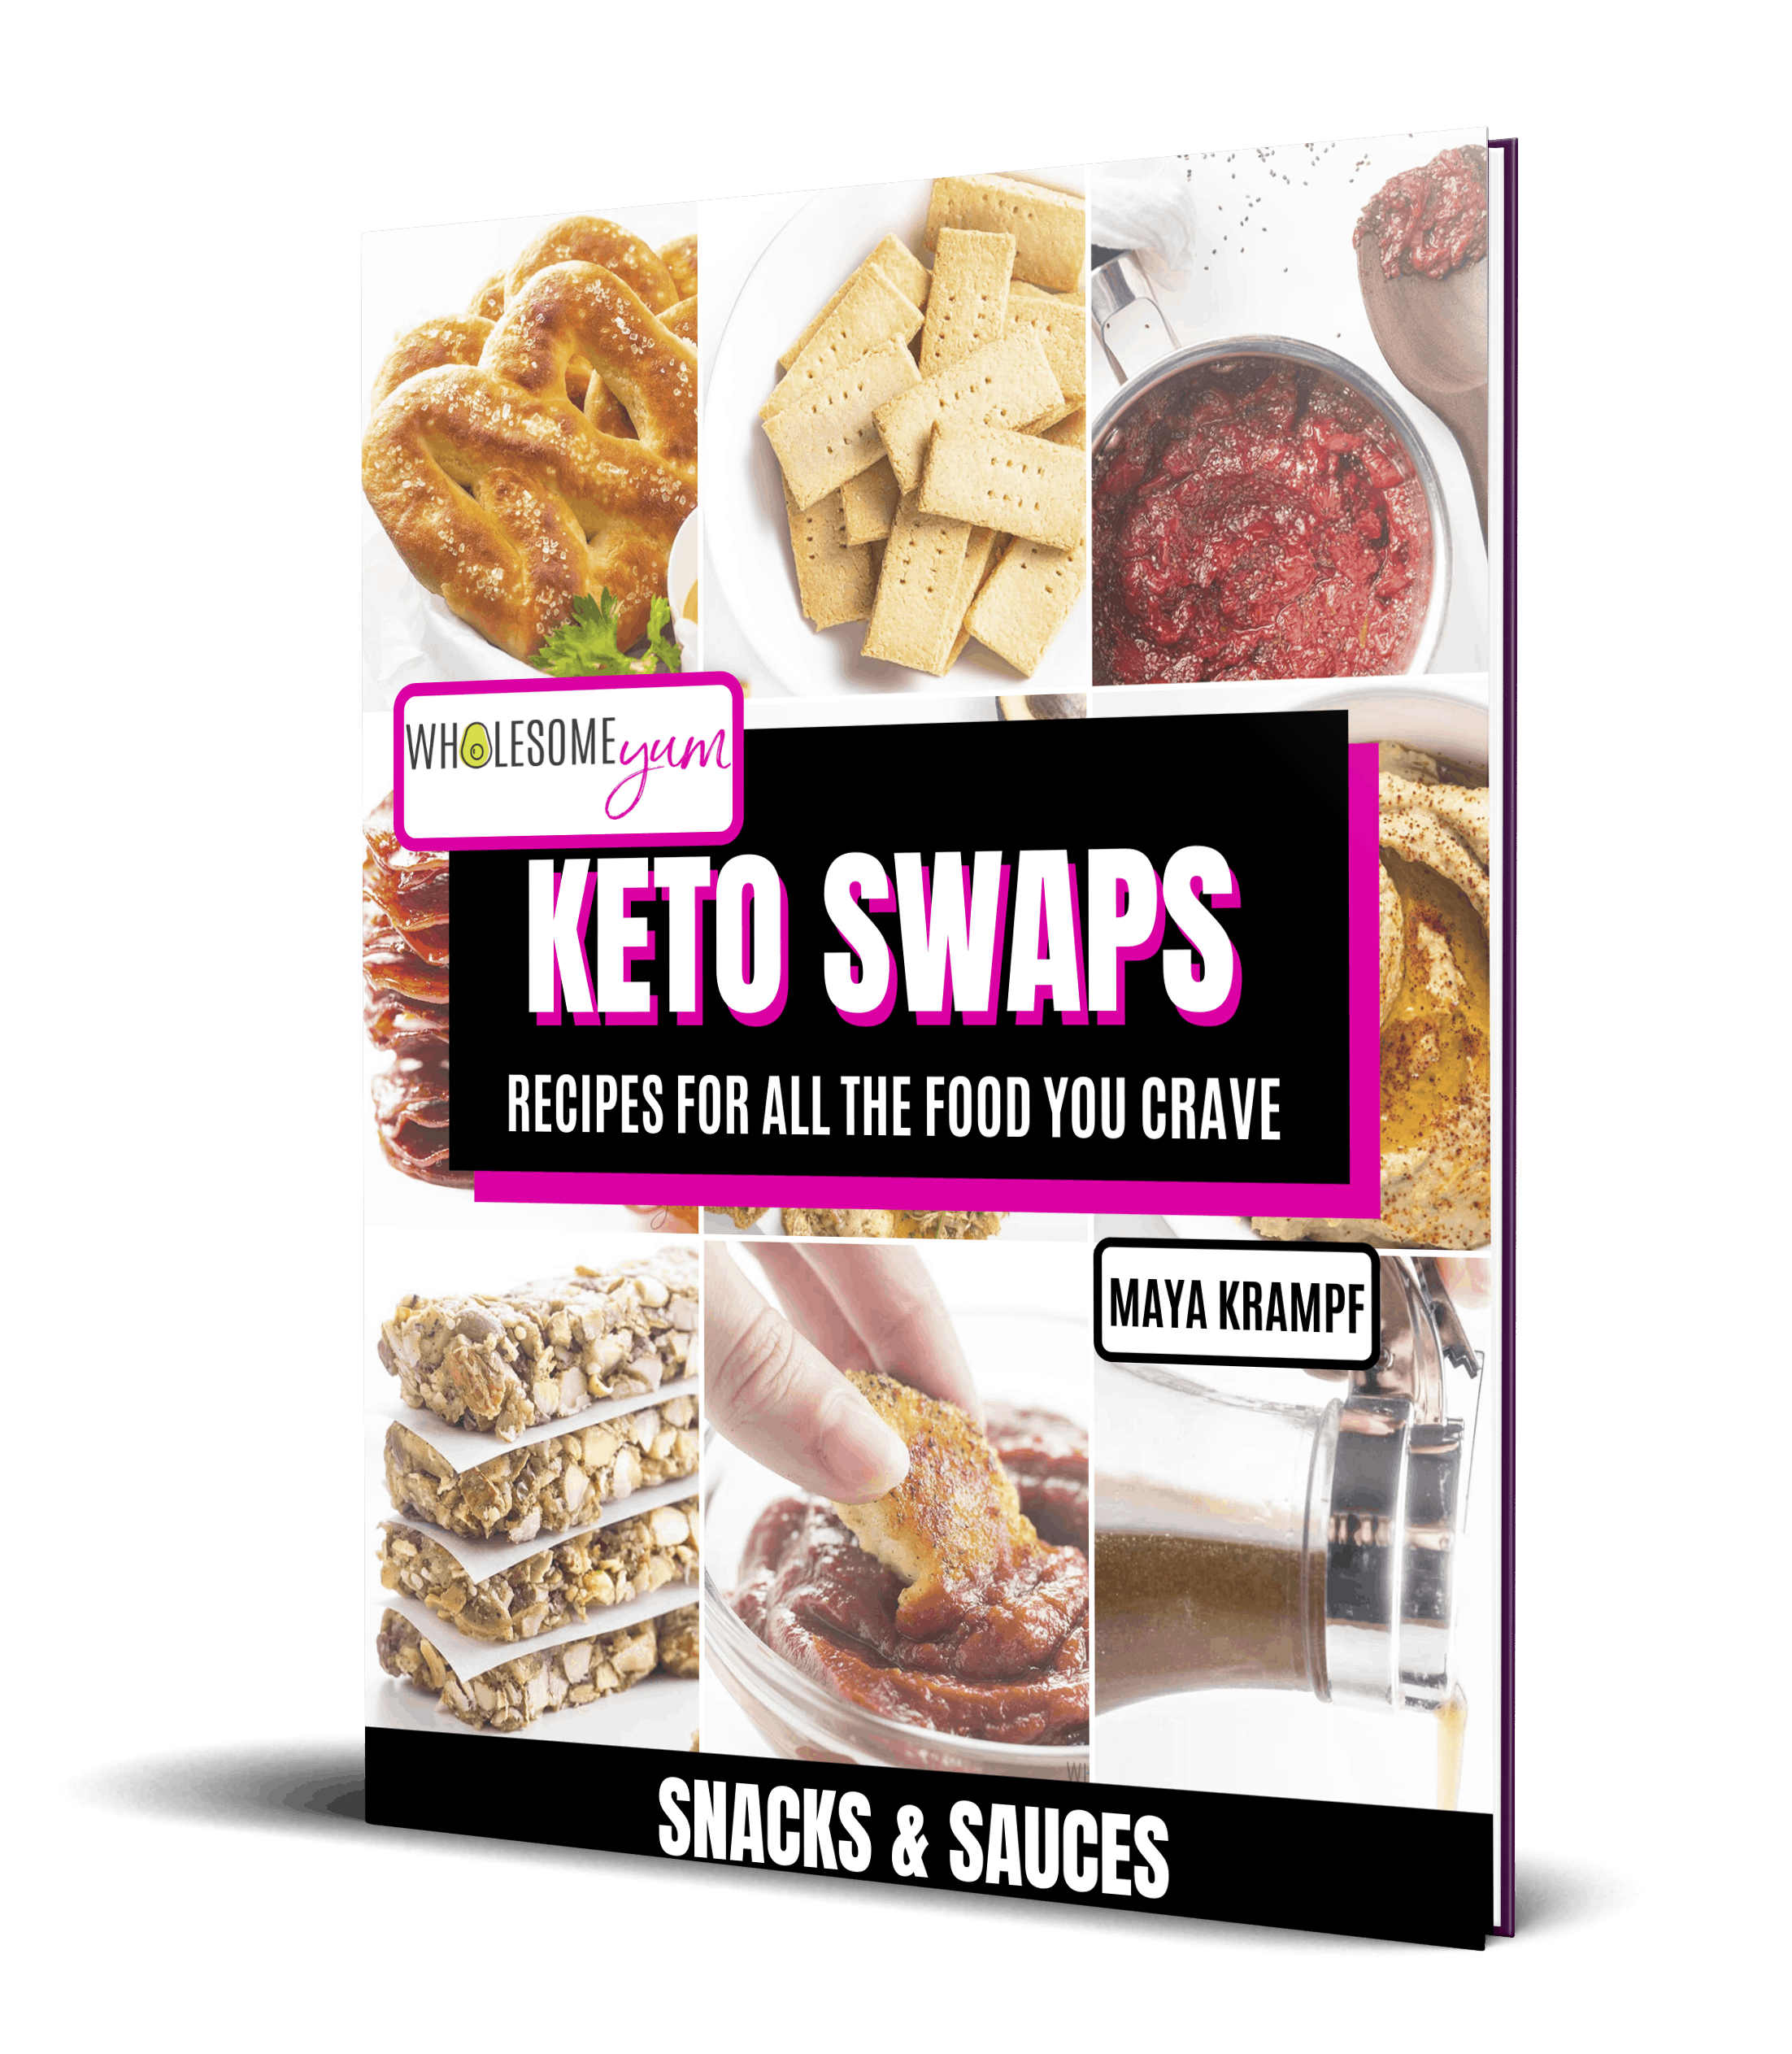 Keto Swaps - Sauces & Snacks